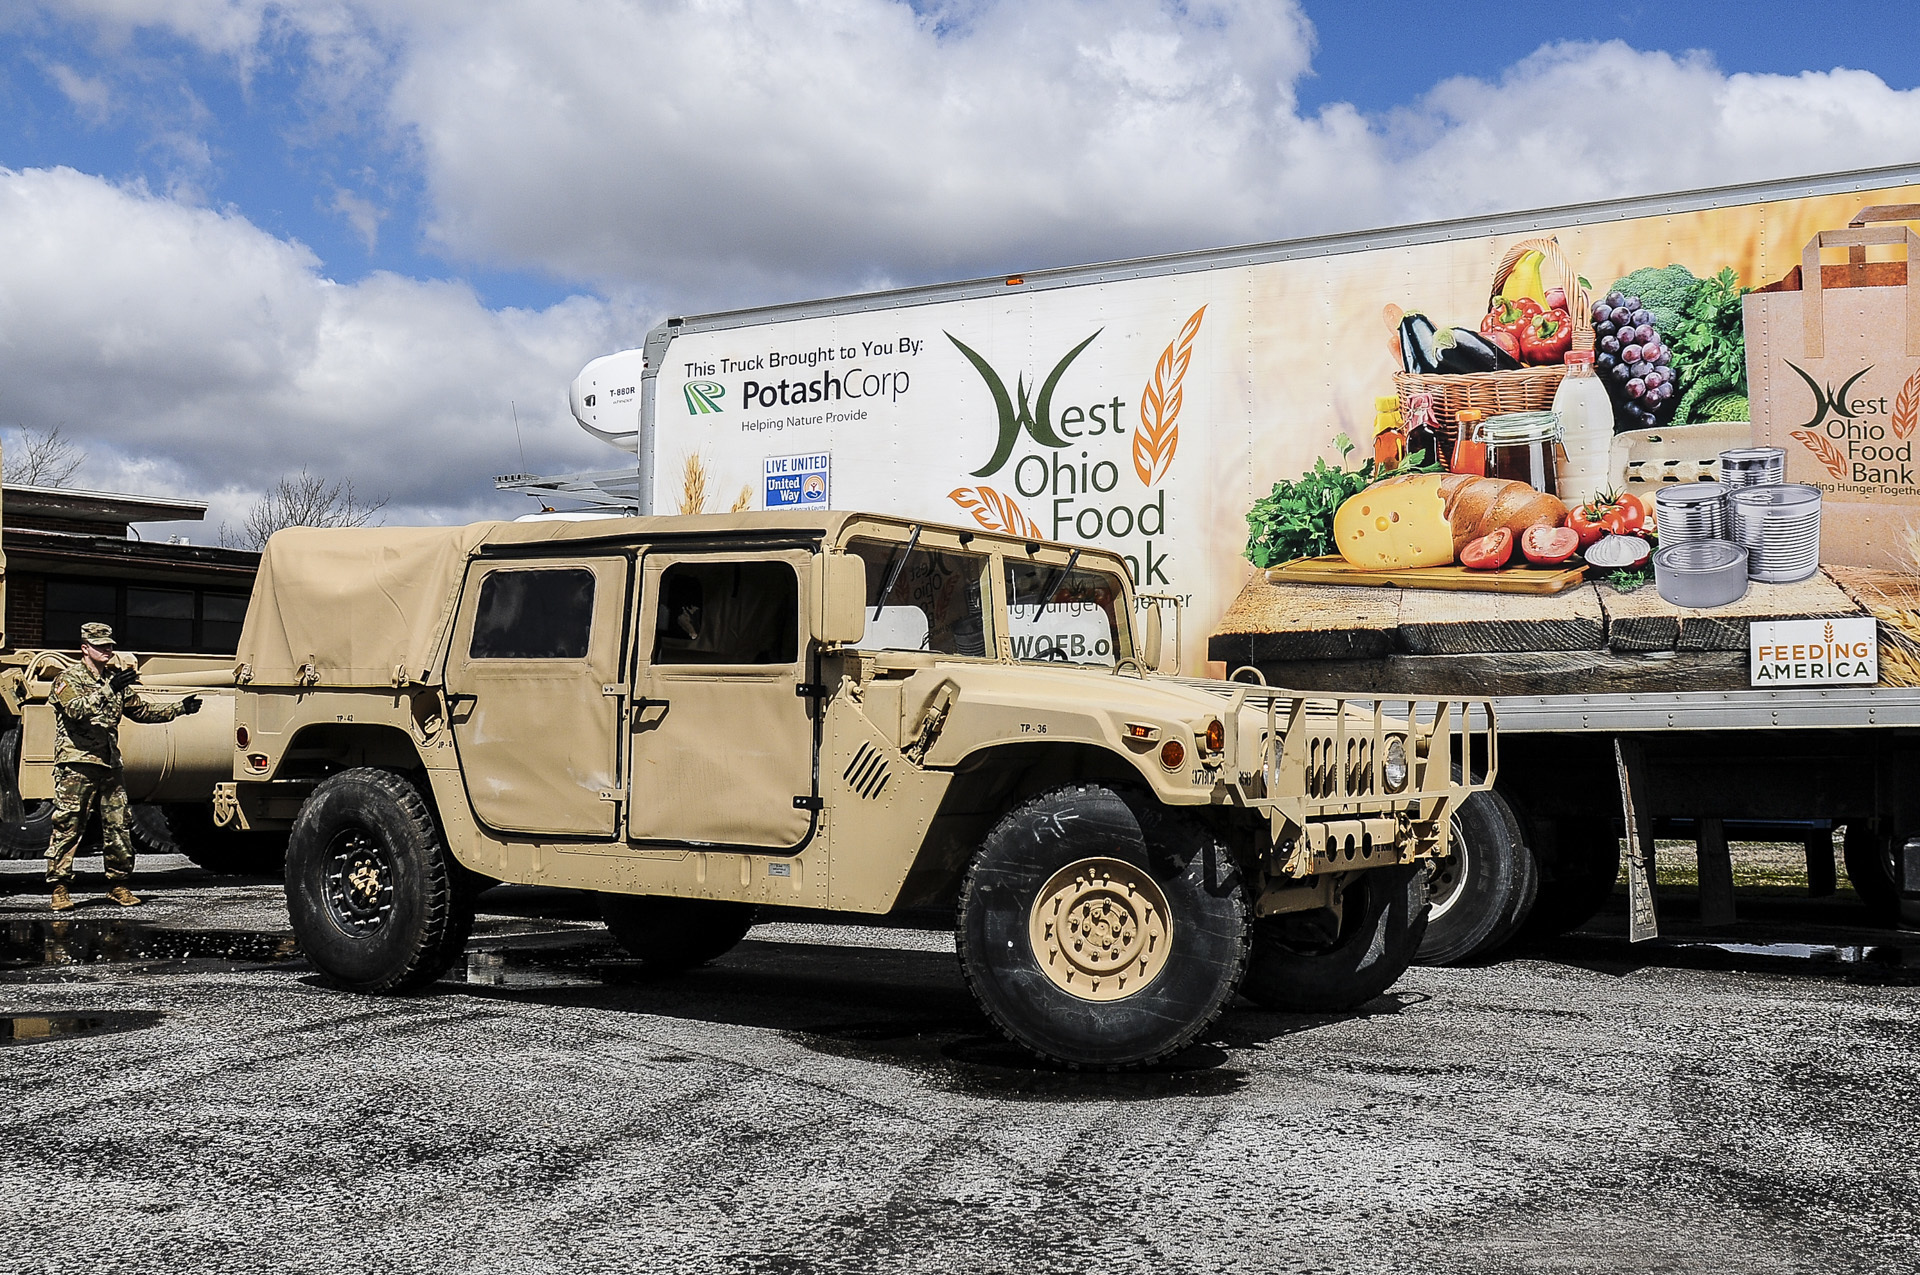 Humvee with food truck.